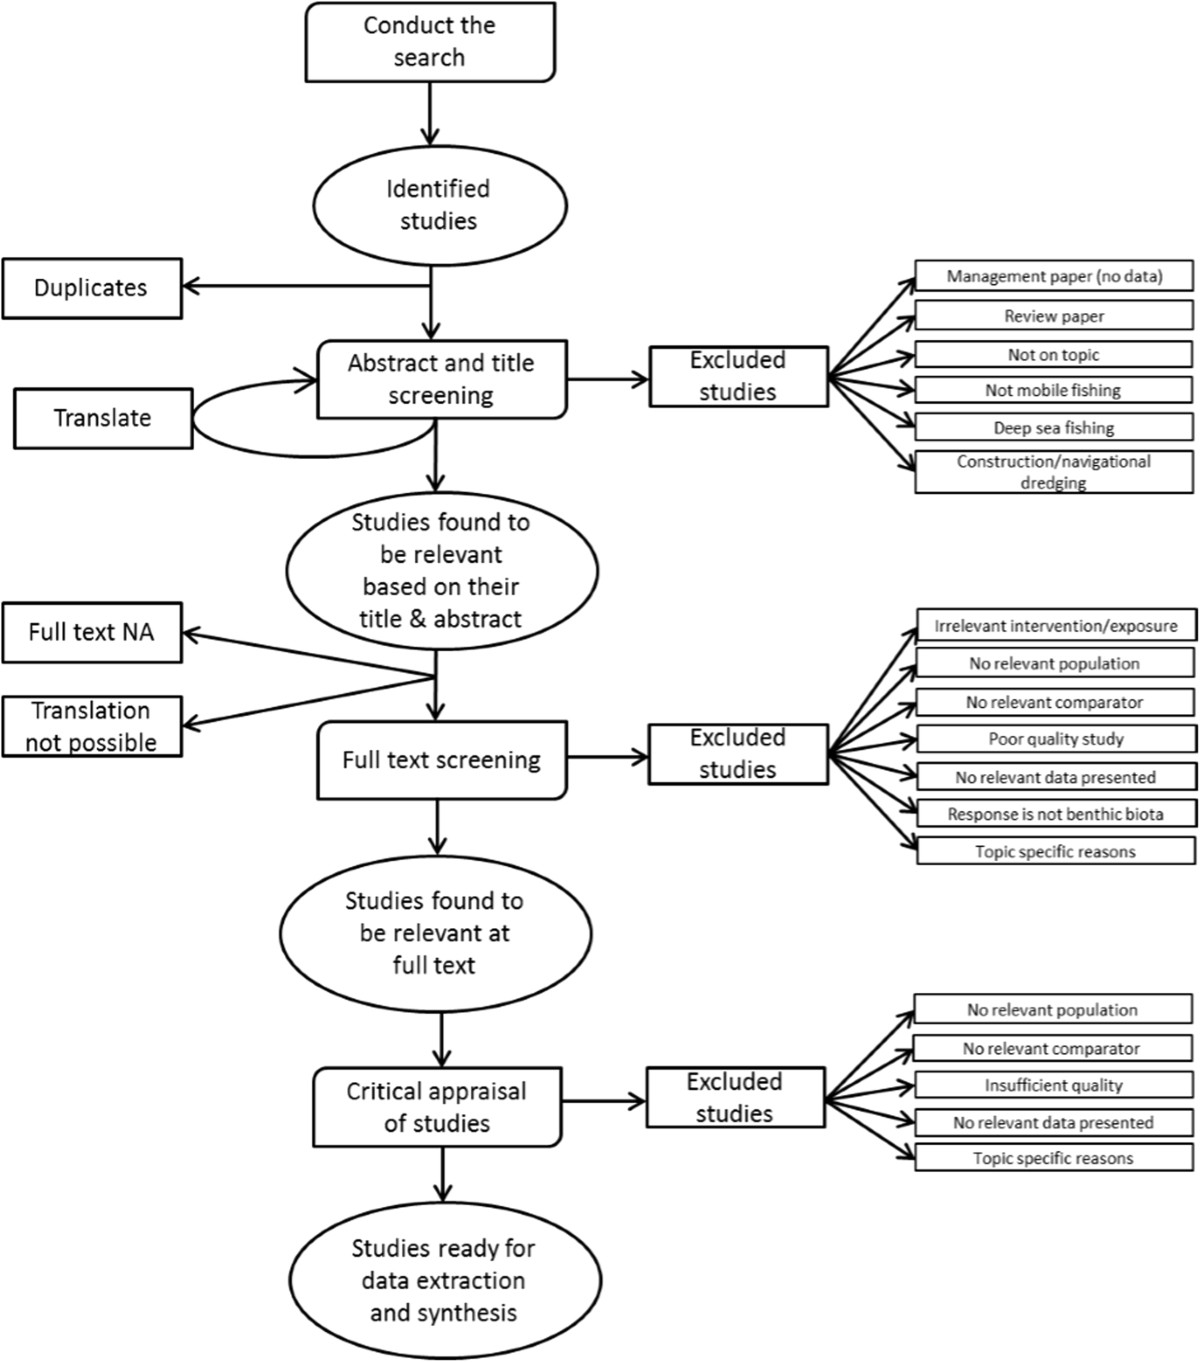 https://static-content.springer.com/image/art%3A10.1186%2F2047-2382-3-23/MediaObjects/13750_2014_Article_59_Fig1_HTML.jpg